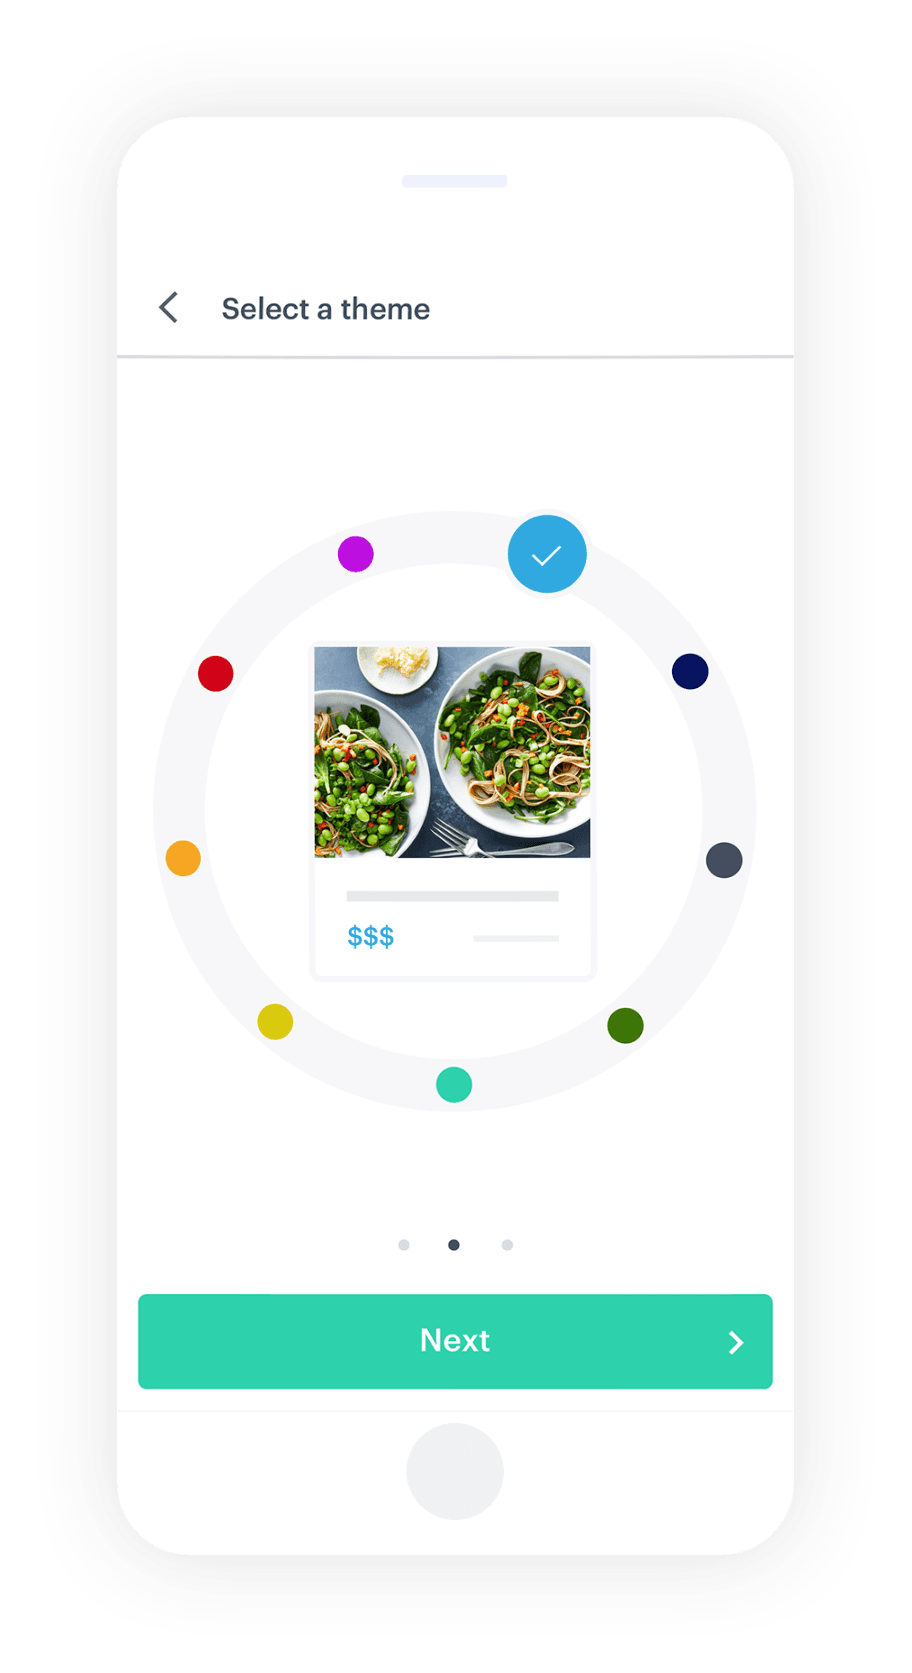 Selecting a theme for your menu